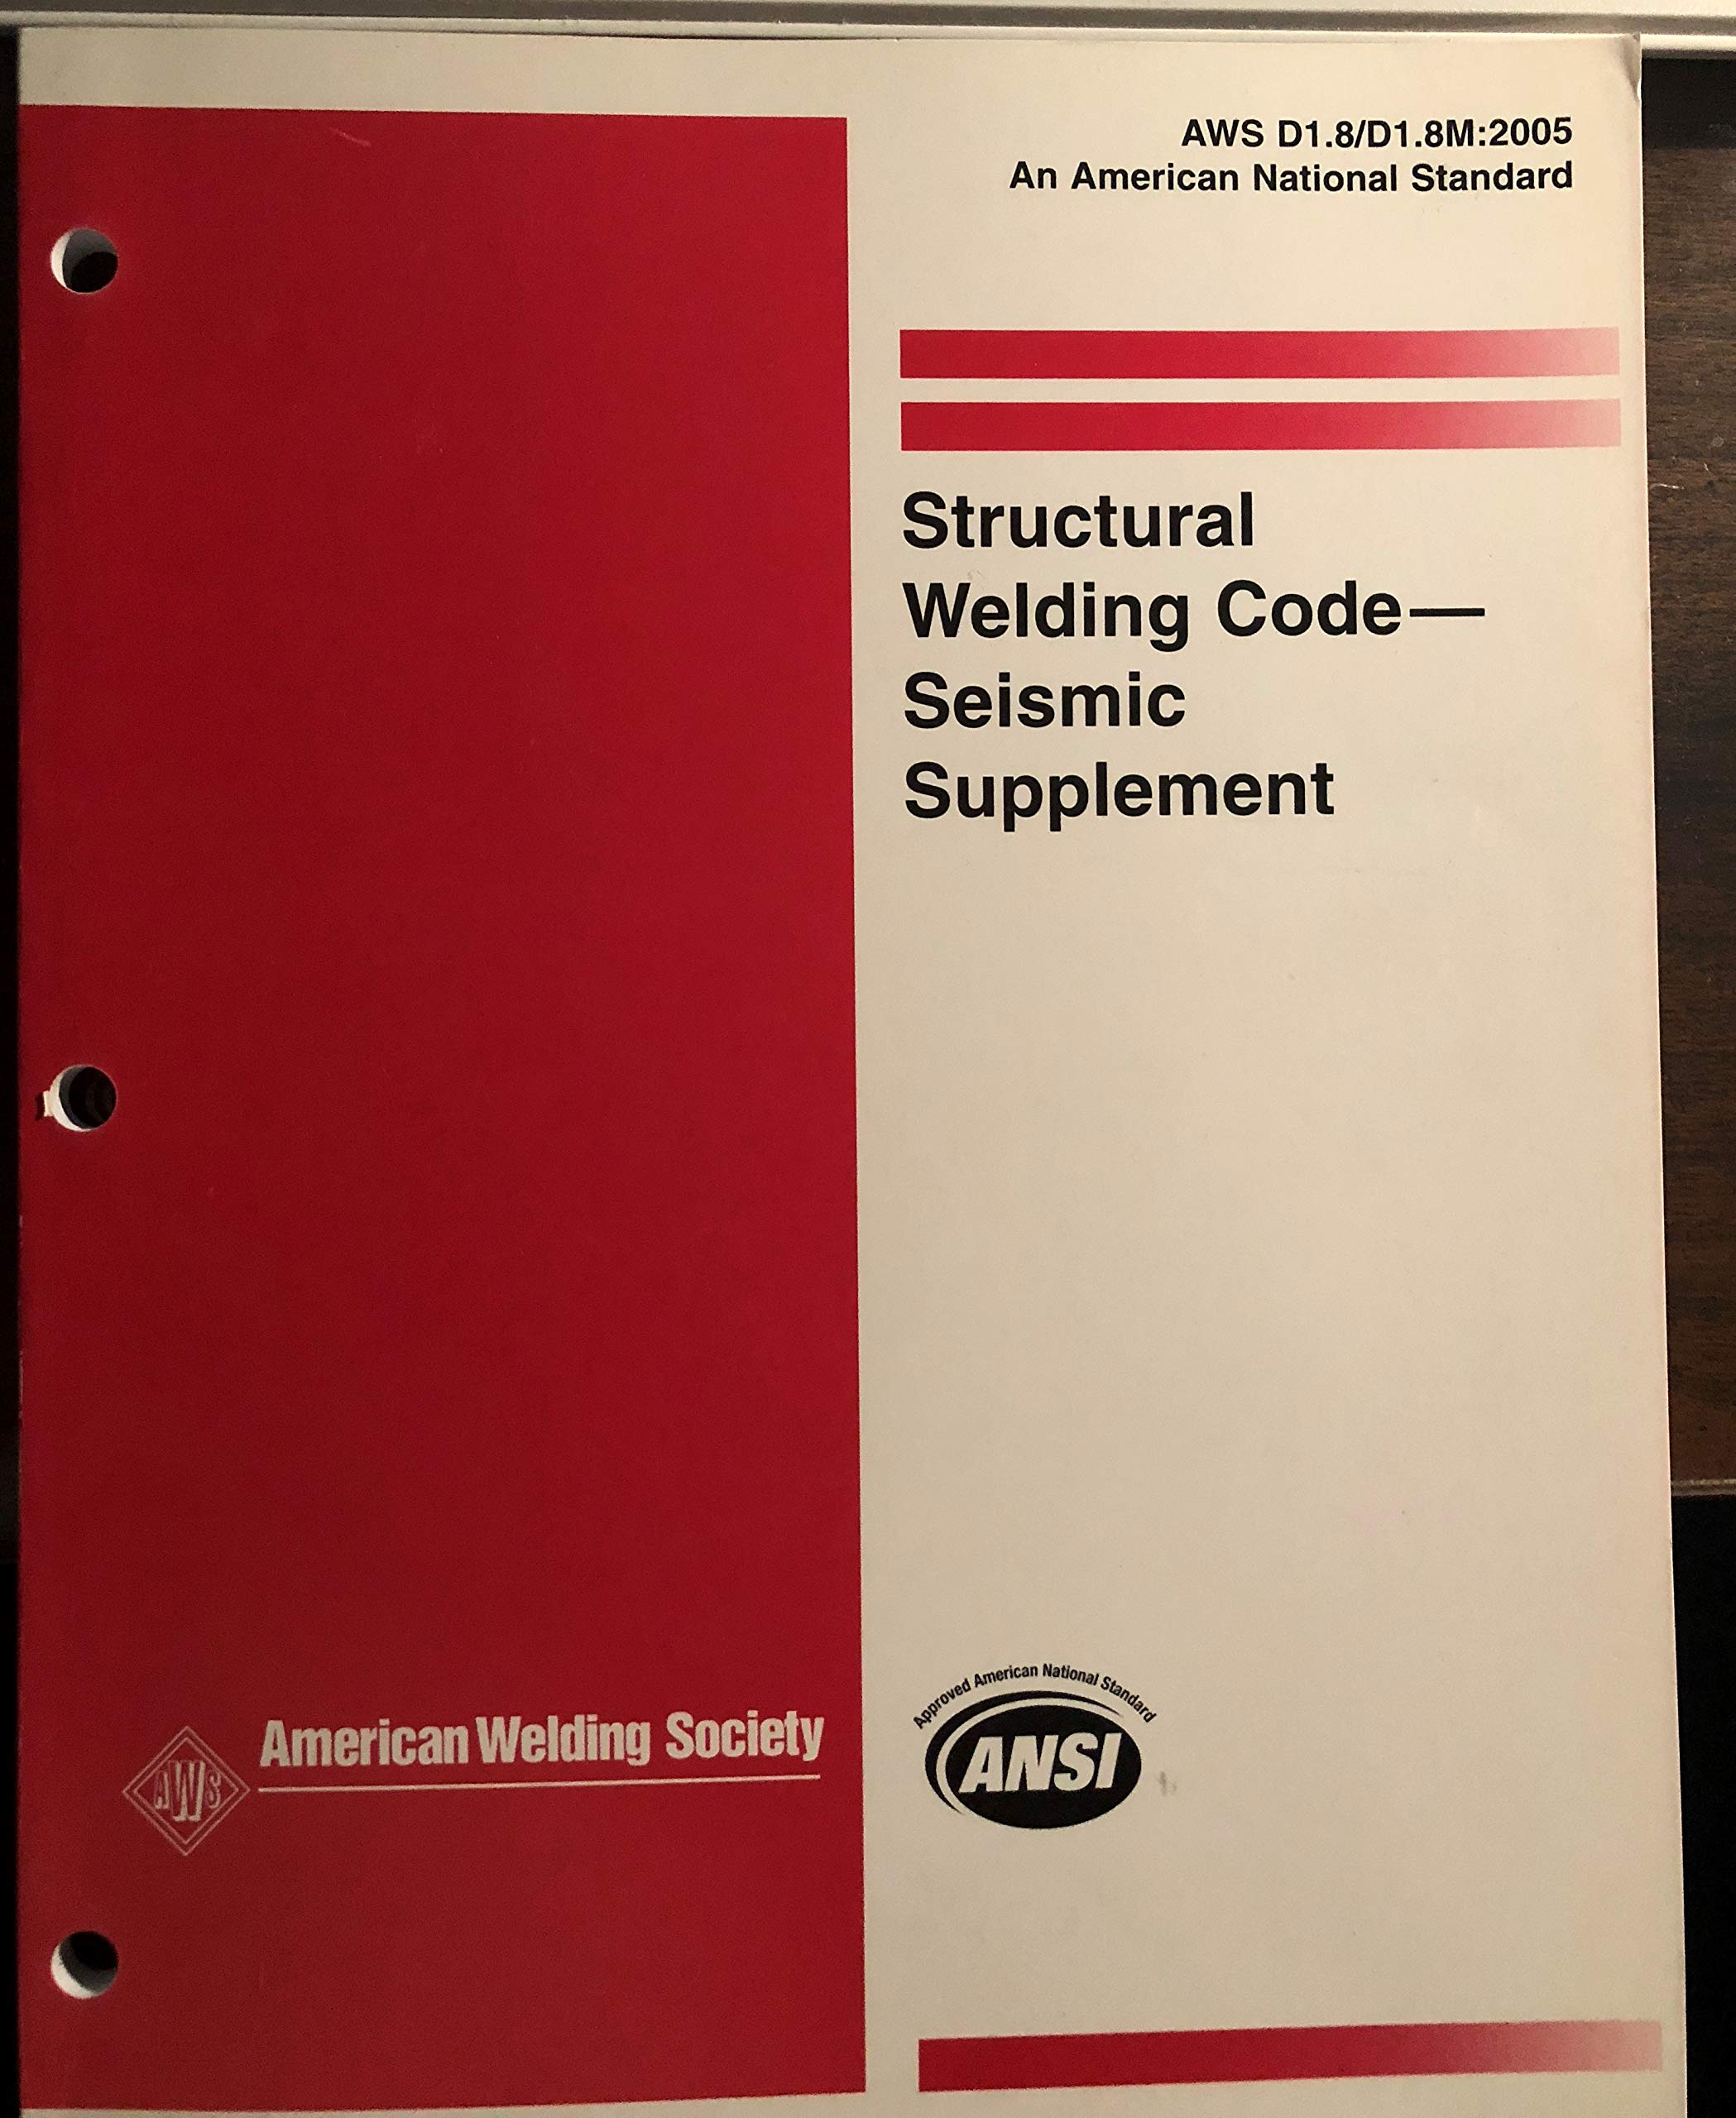 D1 8 D1 8m 2016 Structural Welding Code Seismic Supplement American Welding Society 9780871718945 Amazon Com Books